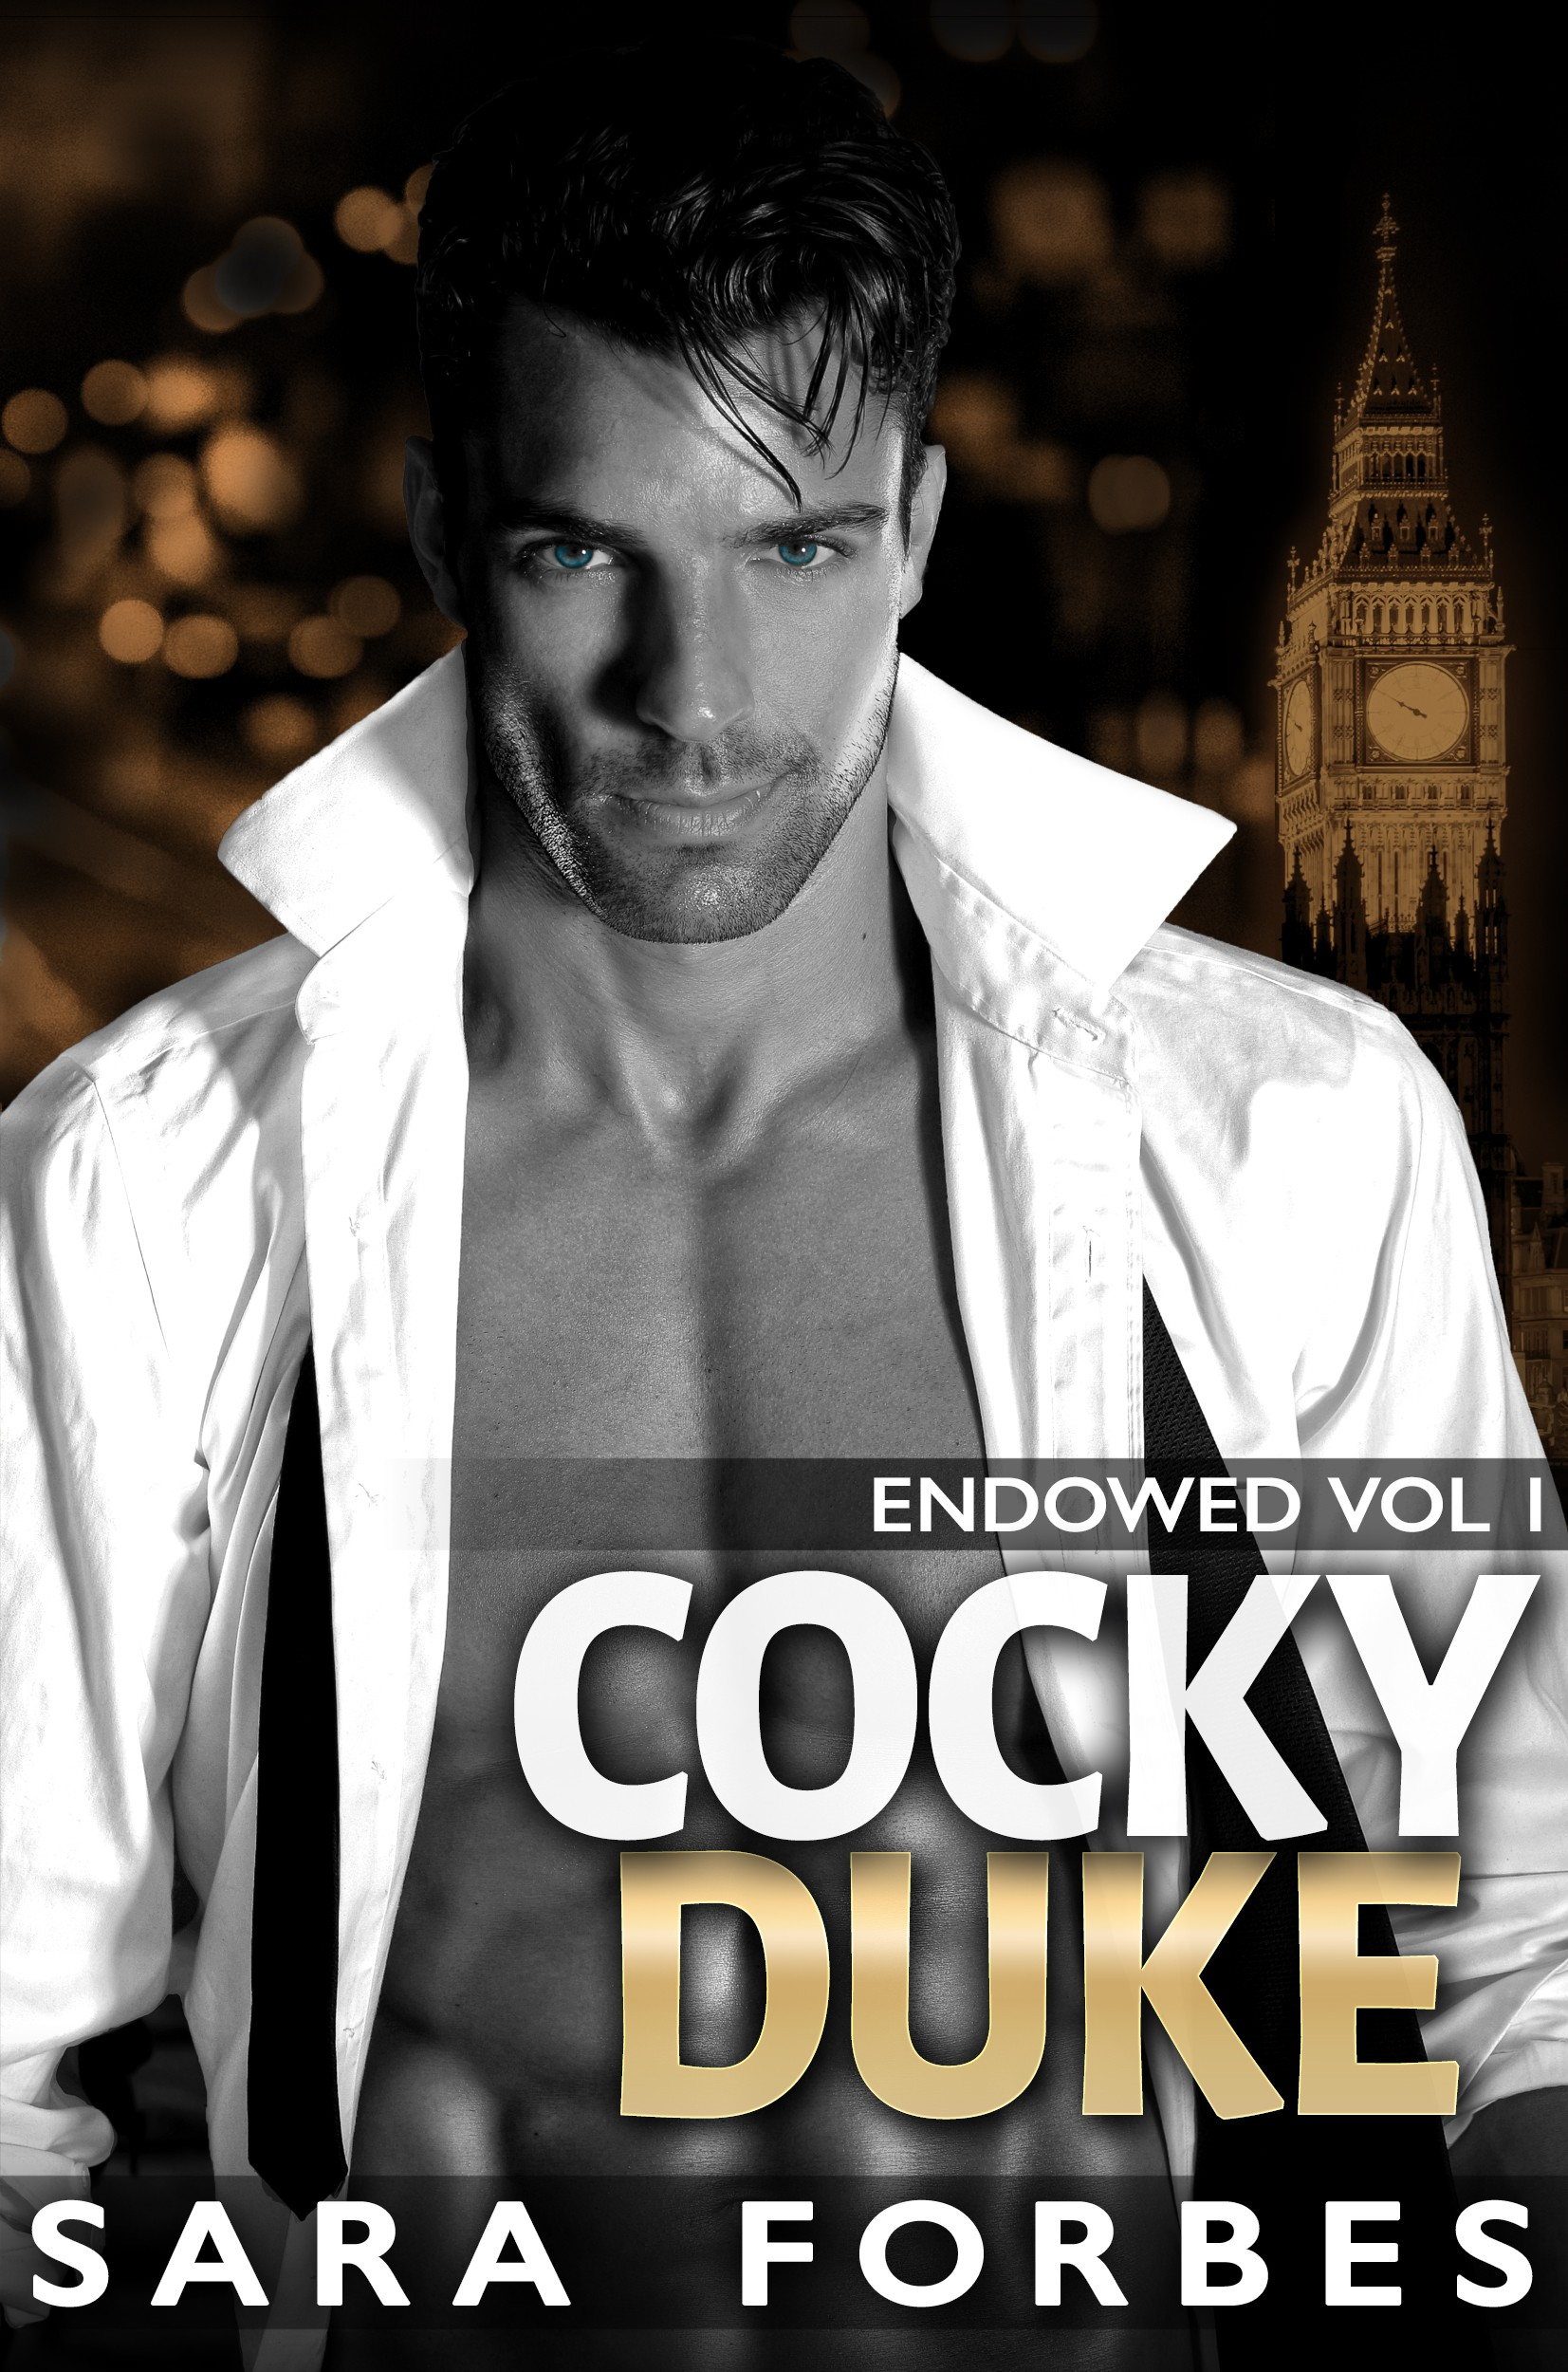 Create hot cover for Sara Forbes' latest romantic billionaire series!